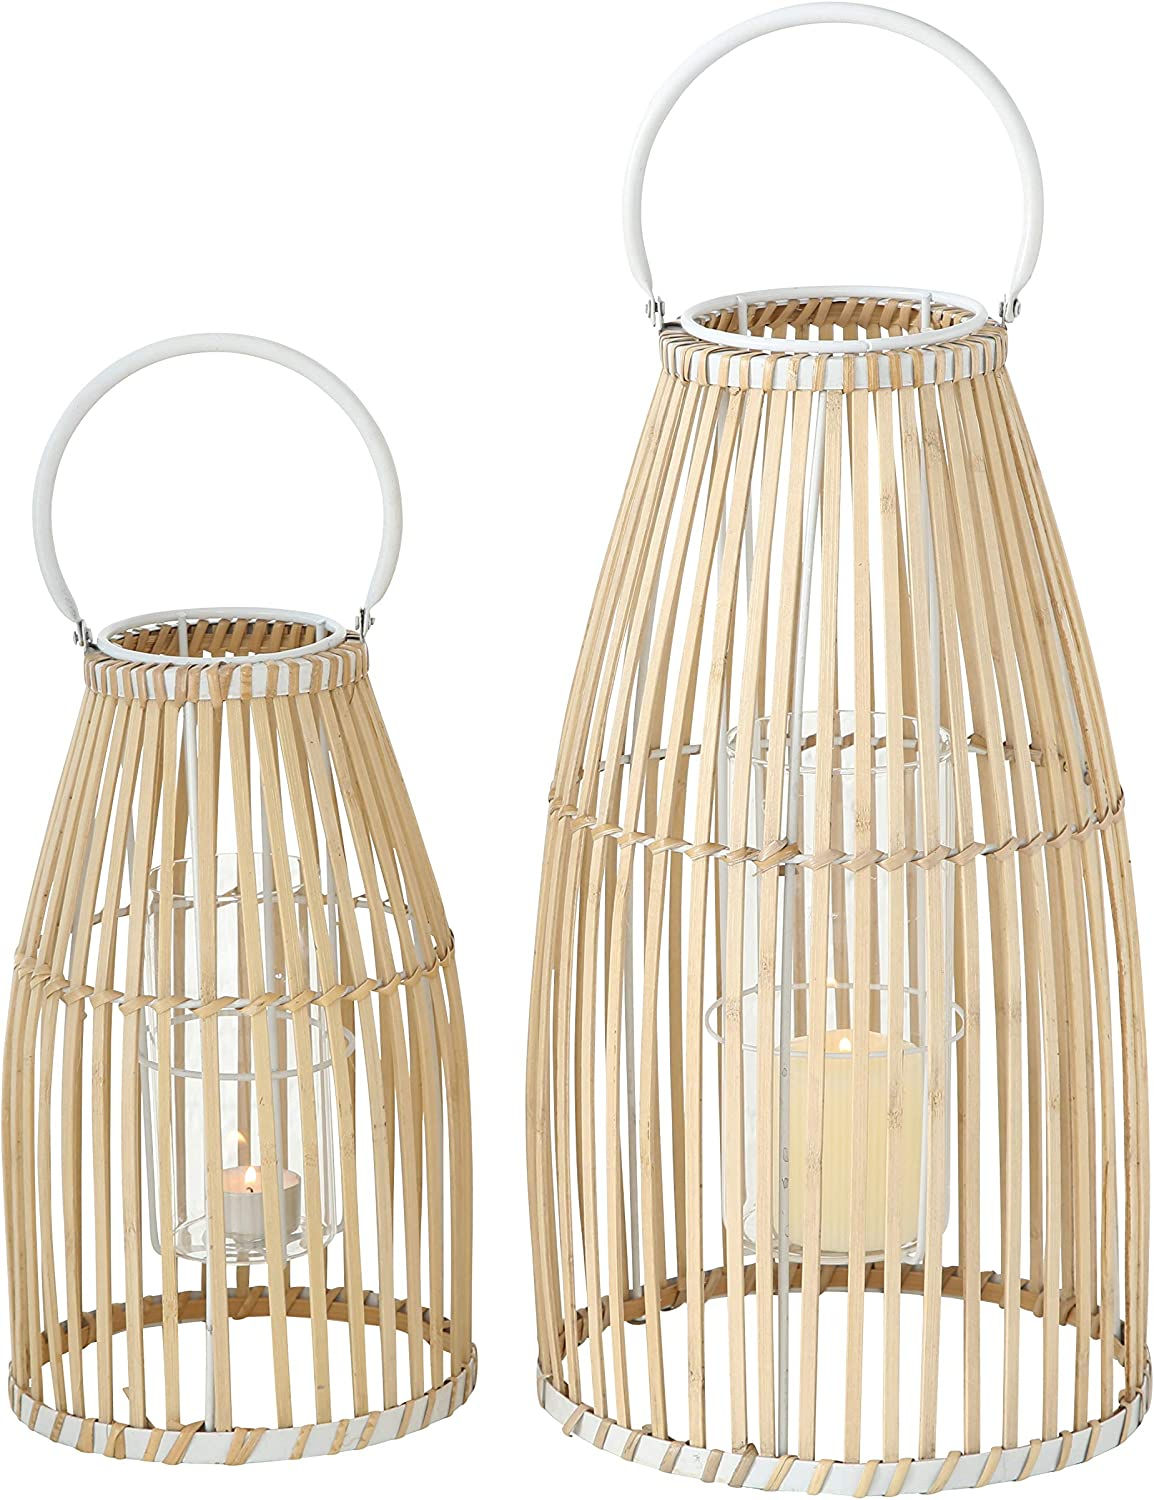 WHW Whole House Worlds Key West Bamboo Hurricane Lanterns, Set of 2, White Metal Frame, Loop Handle, Floating Glass Insert, 9 3/4 D x 17 1/4 T, and 7 D x 12 1/4 T Inches, Modern Tropical Design